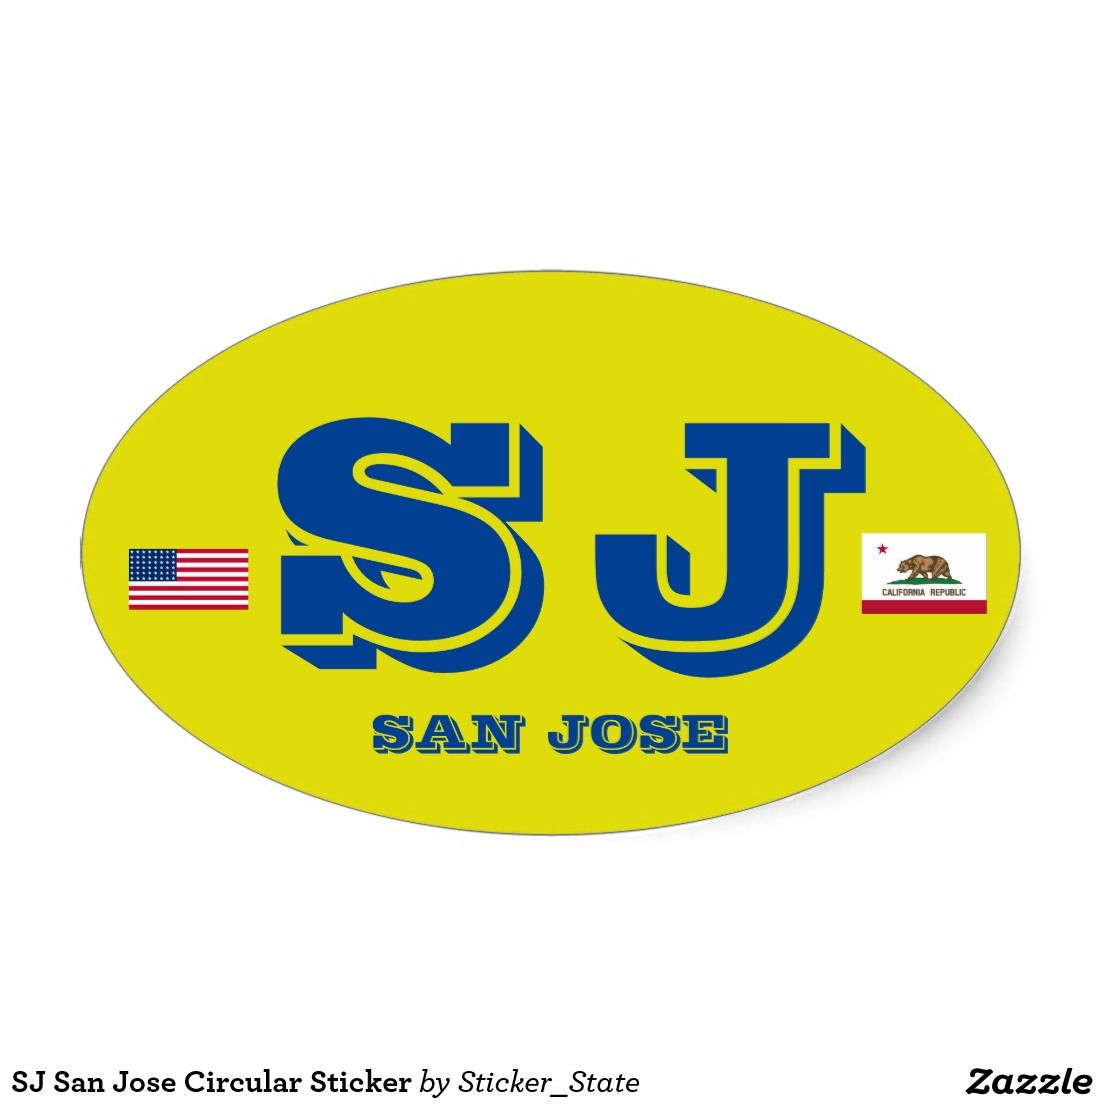 Sj san jose circular sticker